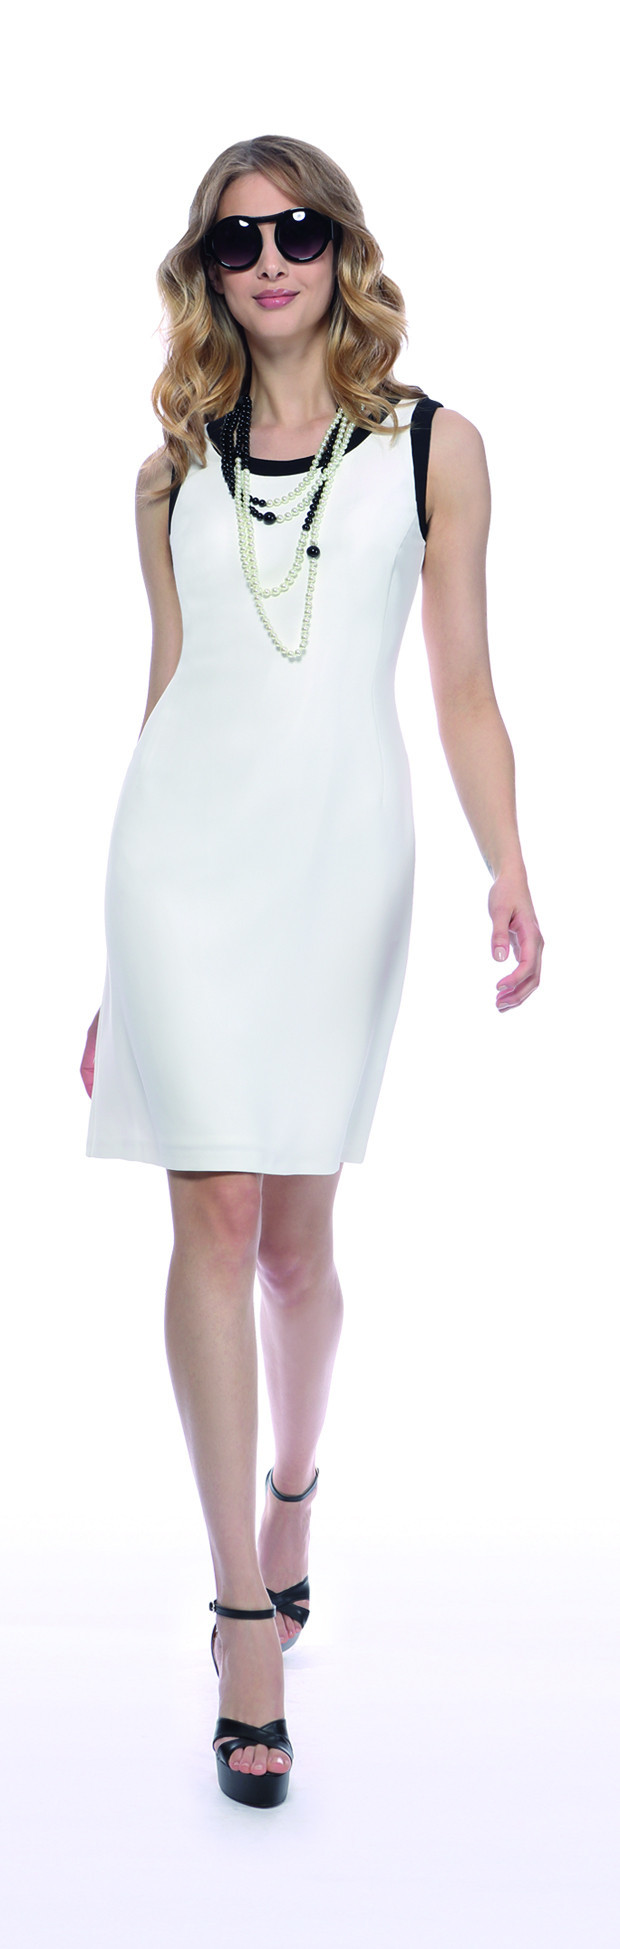 Micheala Louisa Ivory And Black Trimmed Dress - style: shift; neckline: round neck; fit: tailored/fitted; pattern: plain; sleeve style: sleeveless; hip detail: draws attention to hips; secondary colour: white; predominant colour: ivory/cream; length: just above the knee; fibres: polyester/polyamide - 100%; occasions: occasion; sleeve length: sleeveless; texture group: crepes; pattern type: fabric; season: s/s 2016; wardrobe: event